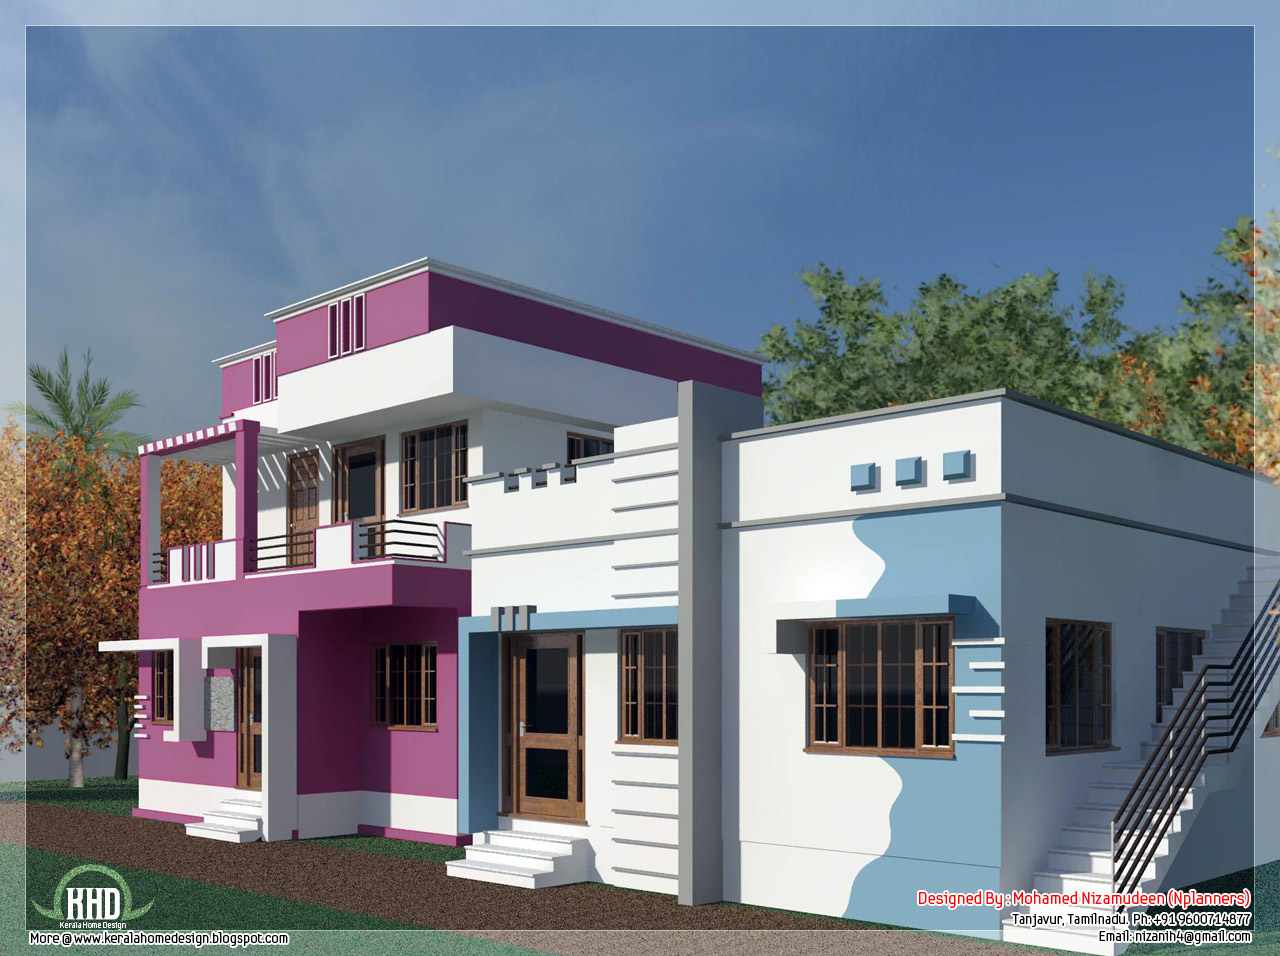 Amazing House Model Design 1280 x 956 · 259 kB · jpeg